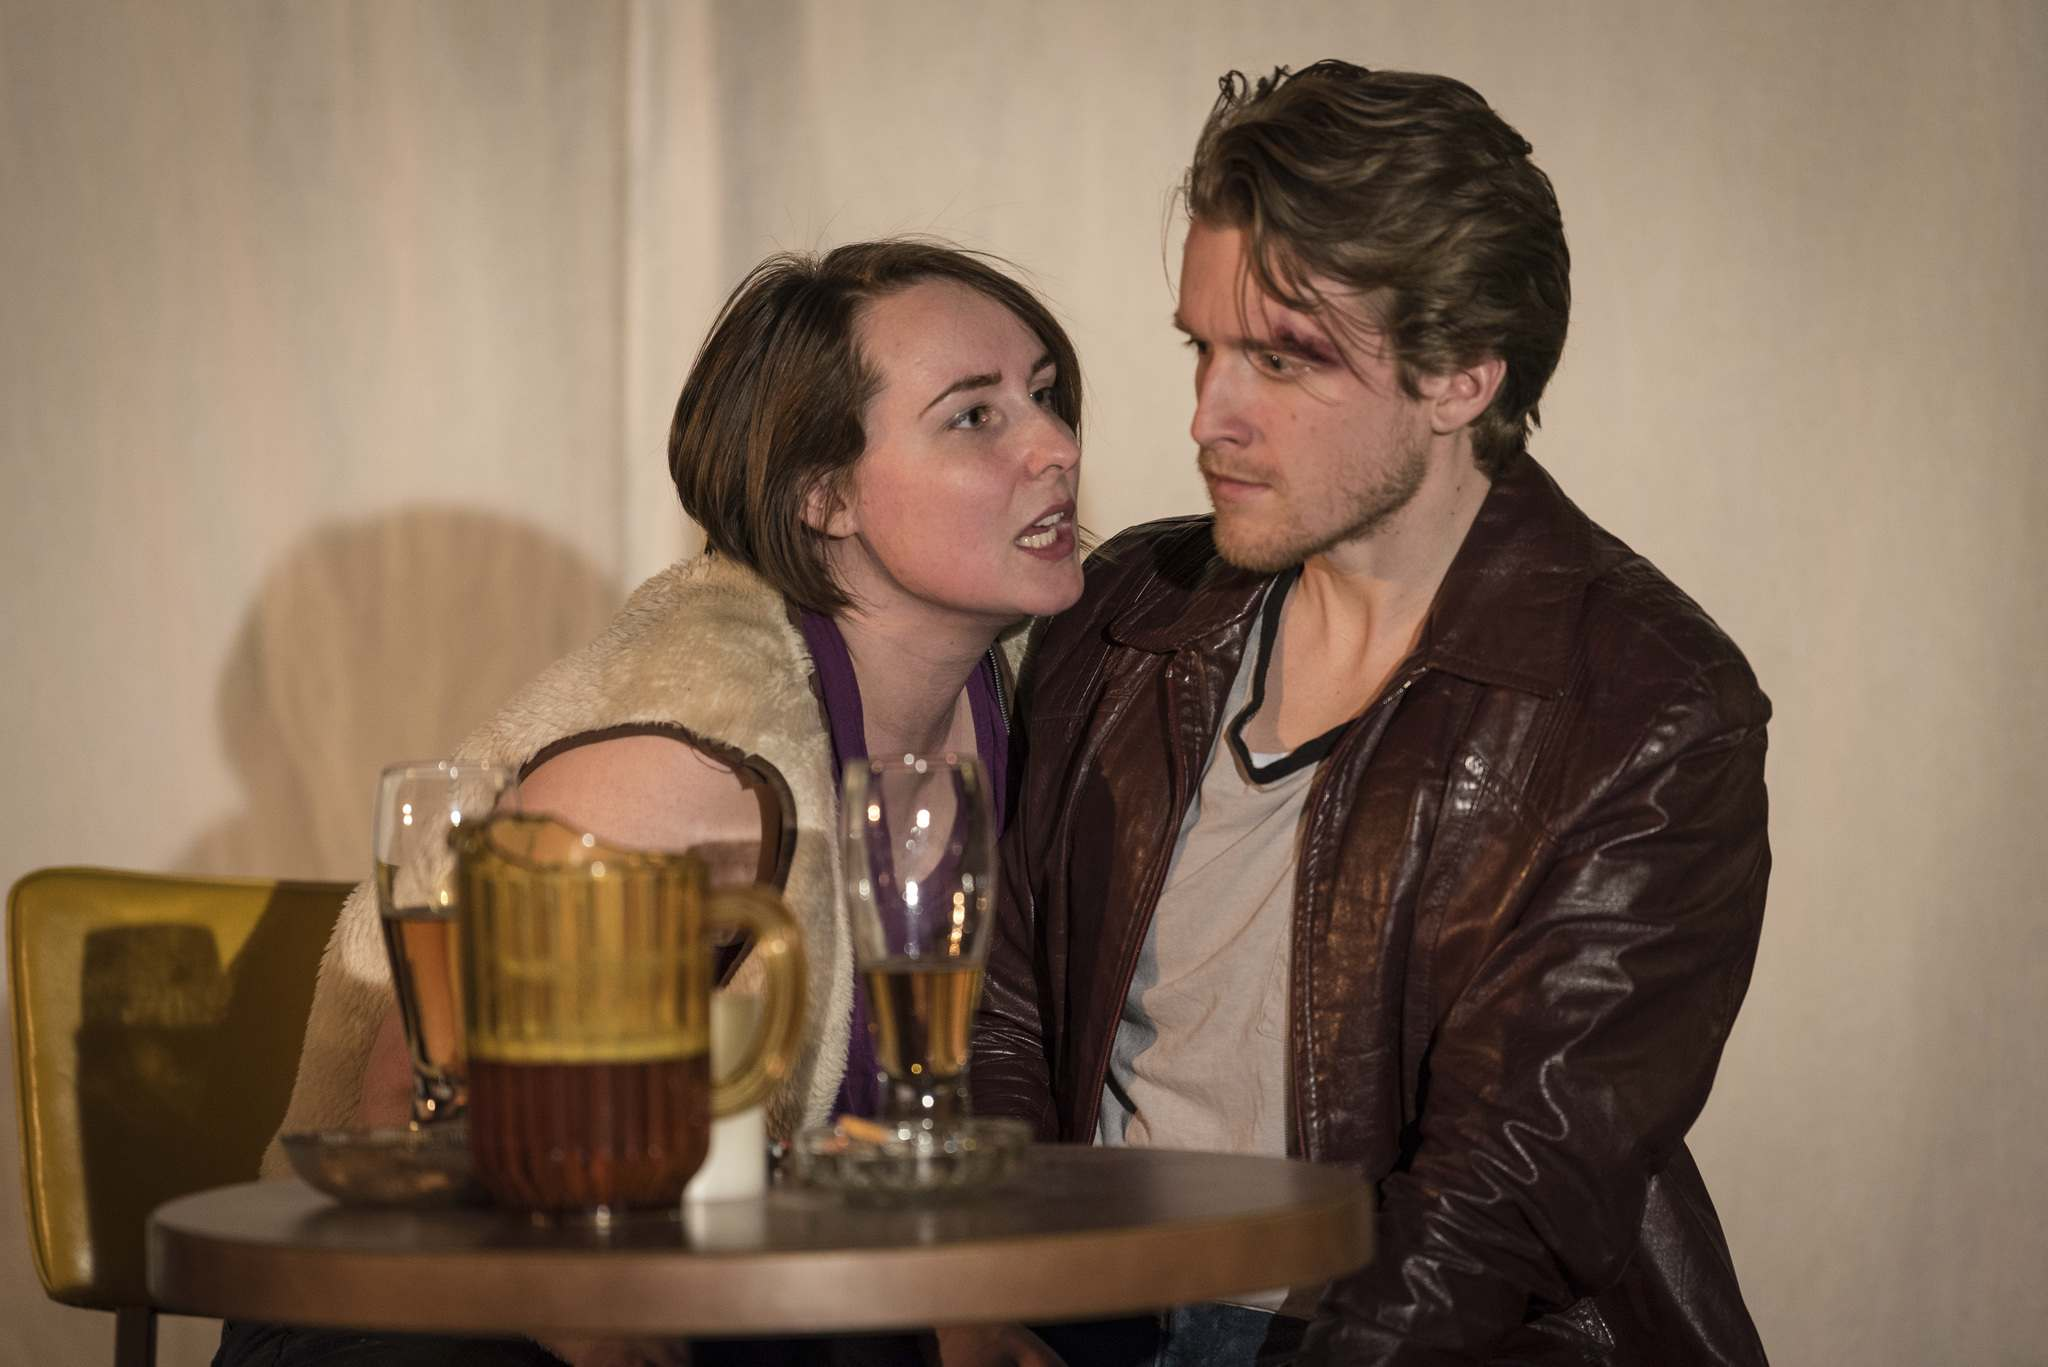 Kayla Gordon</p><p>RobYn Slade (left) and Darren Martens, as Roberta and Danny, in Patrick Shanley's play, Danny and the Deep Blue Sea: An Apache Dance, held at the Keep Theatre until Feb. 17.</p></p>